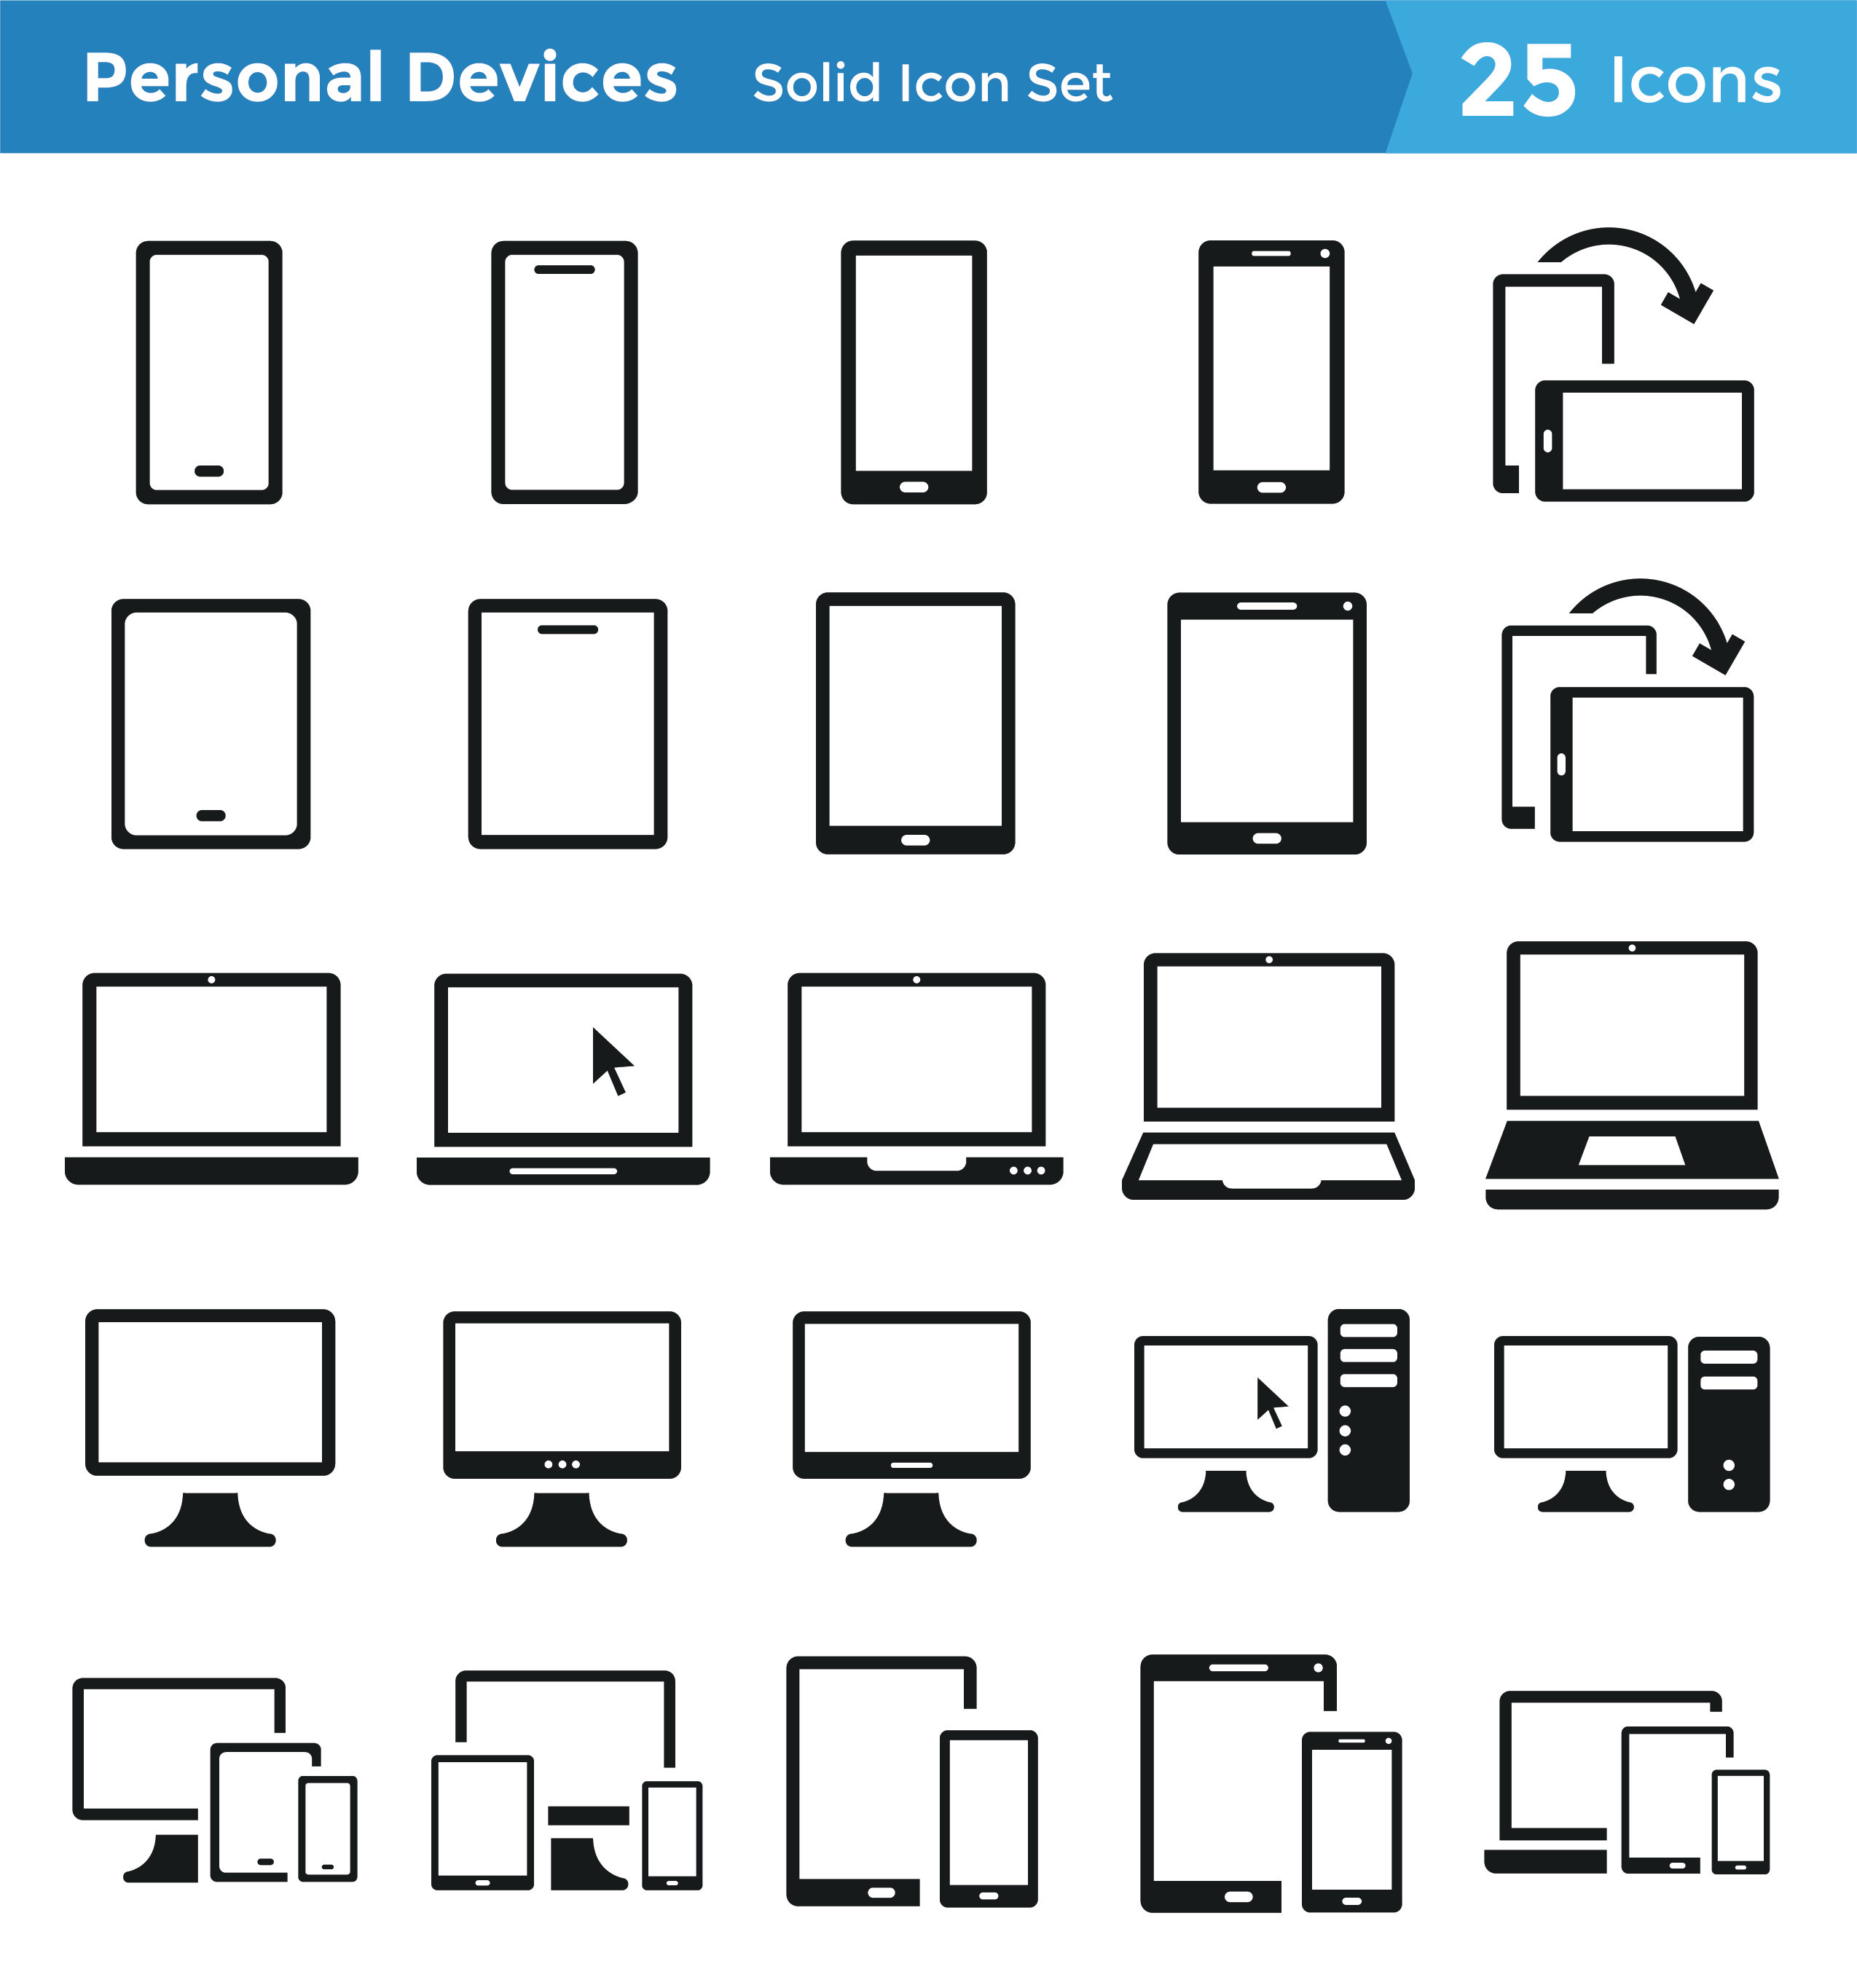 Personal Devices Icon Set: Solid